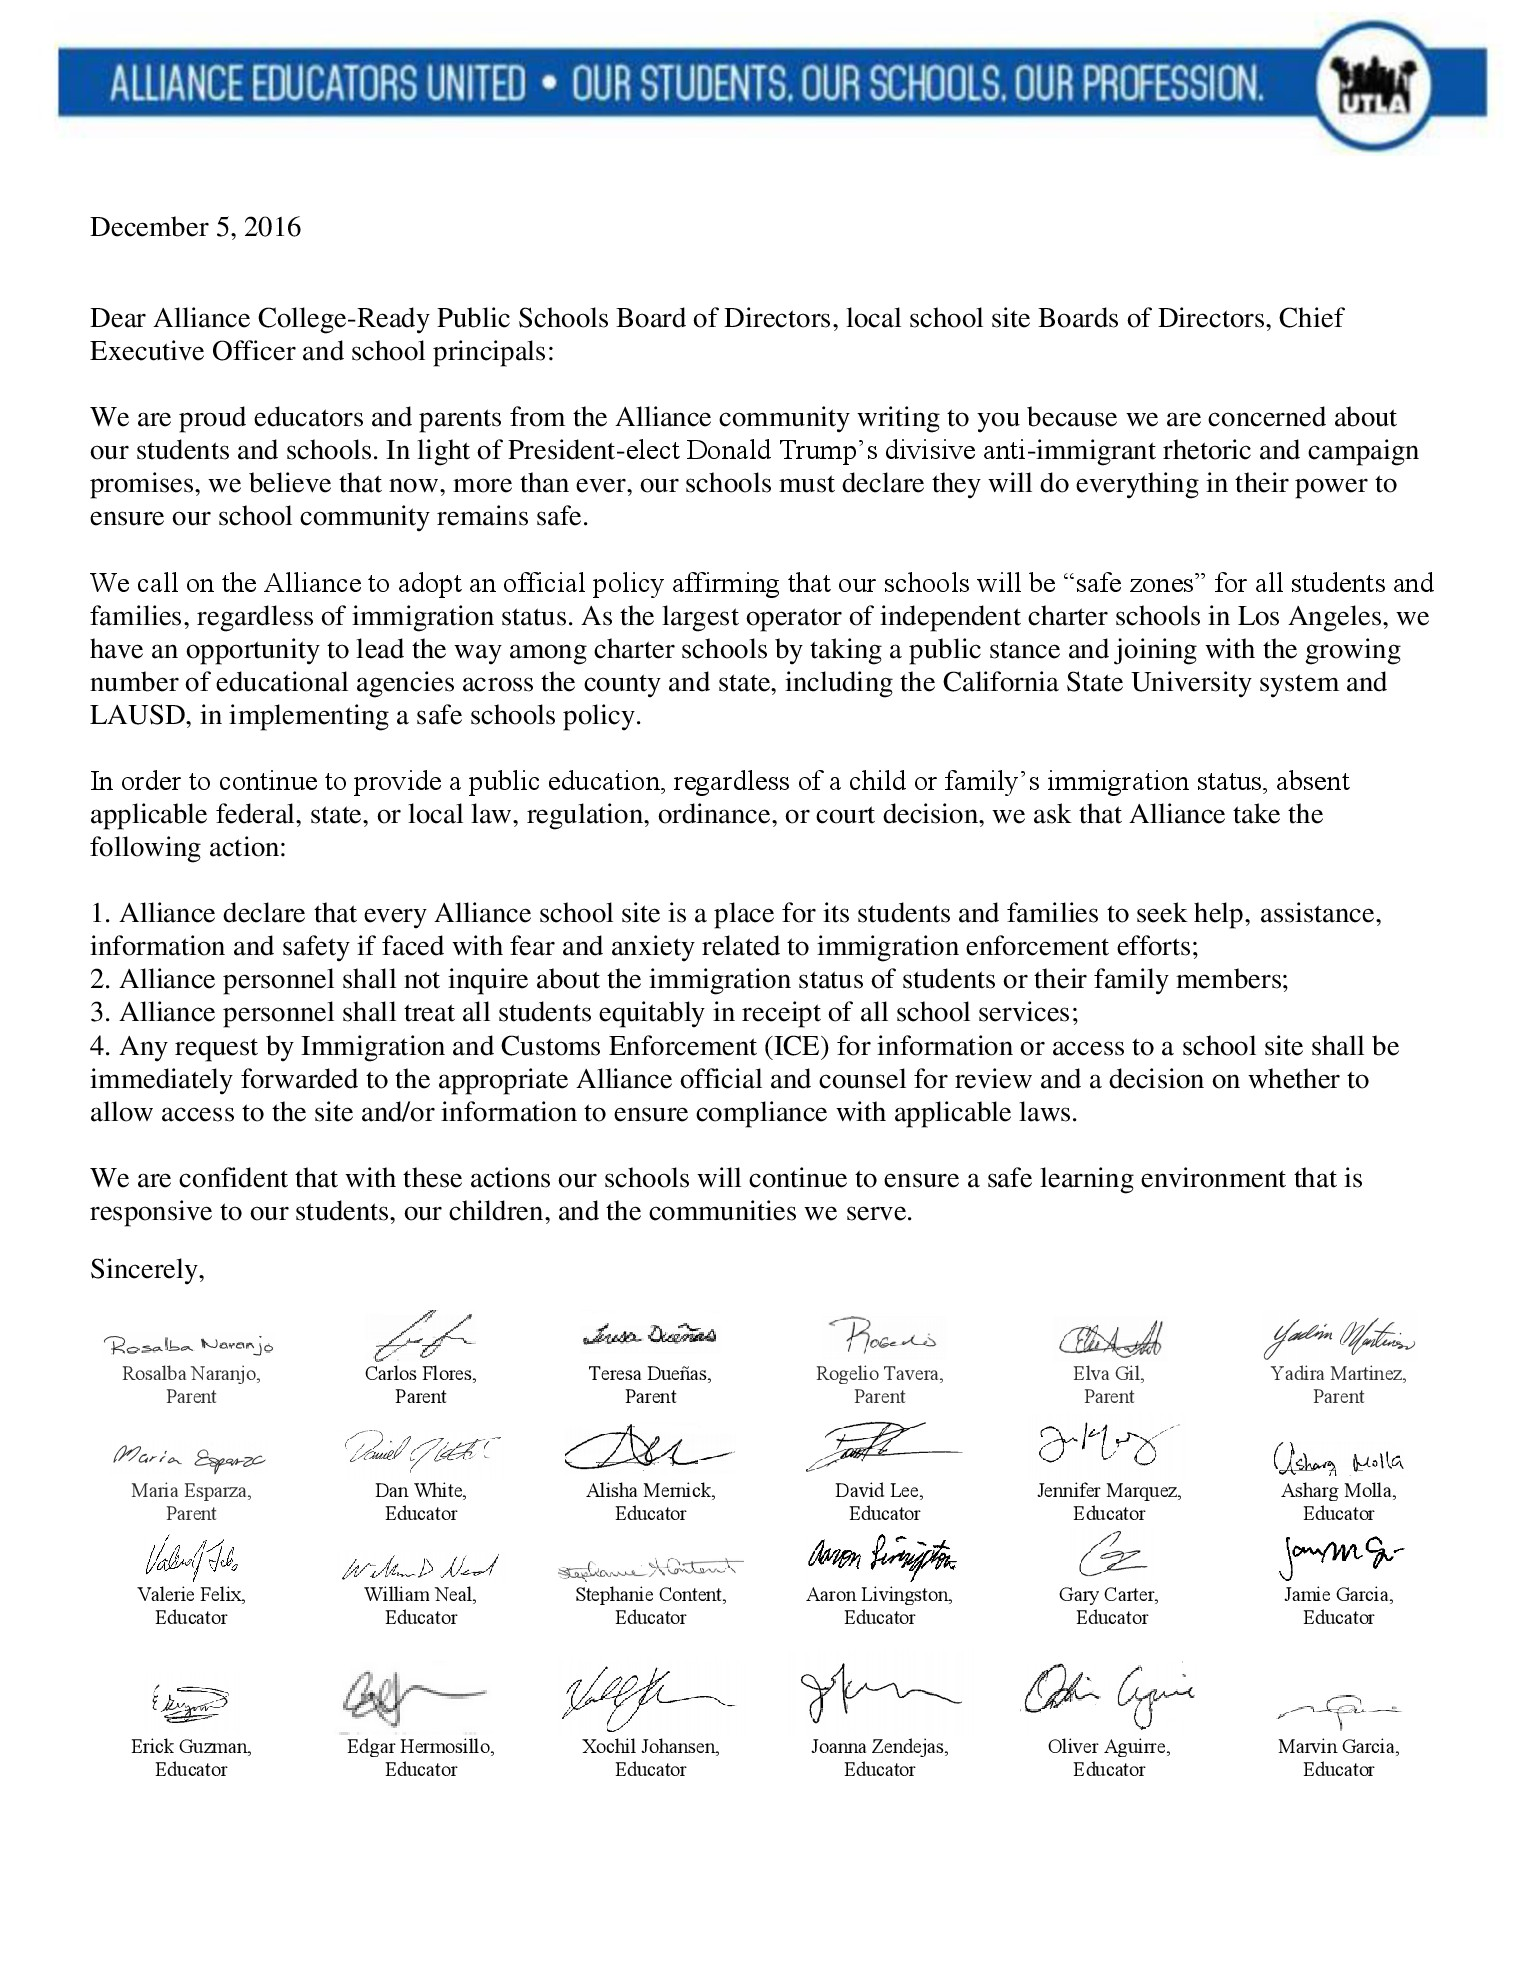 December 5 2016 Alliance ICE Letter final_ENGLISH version